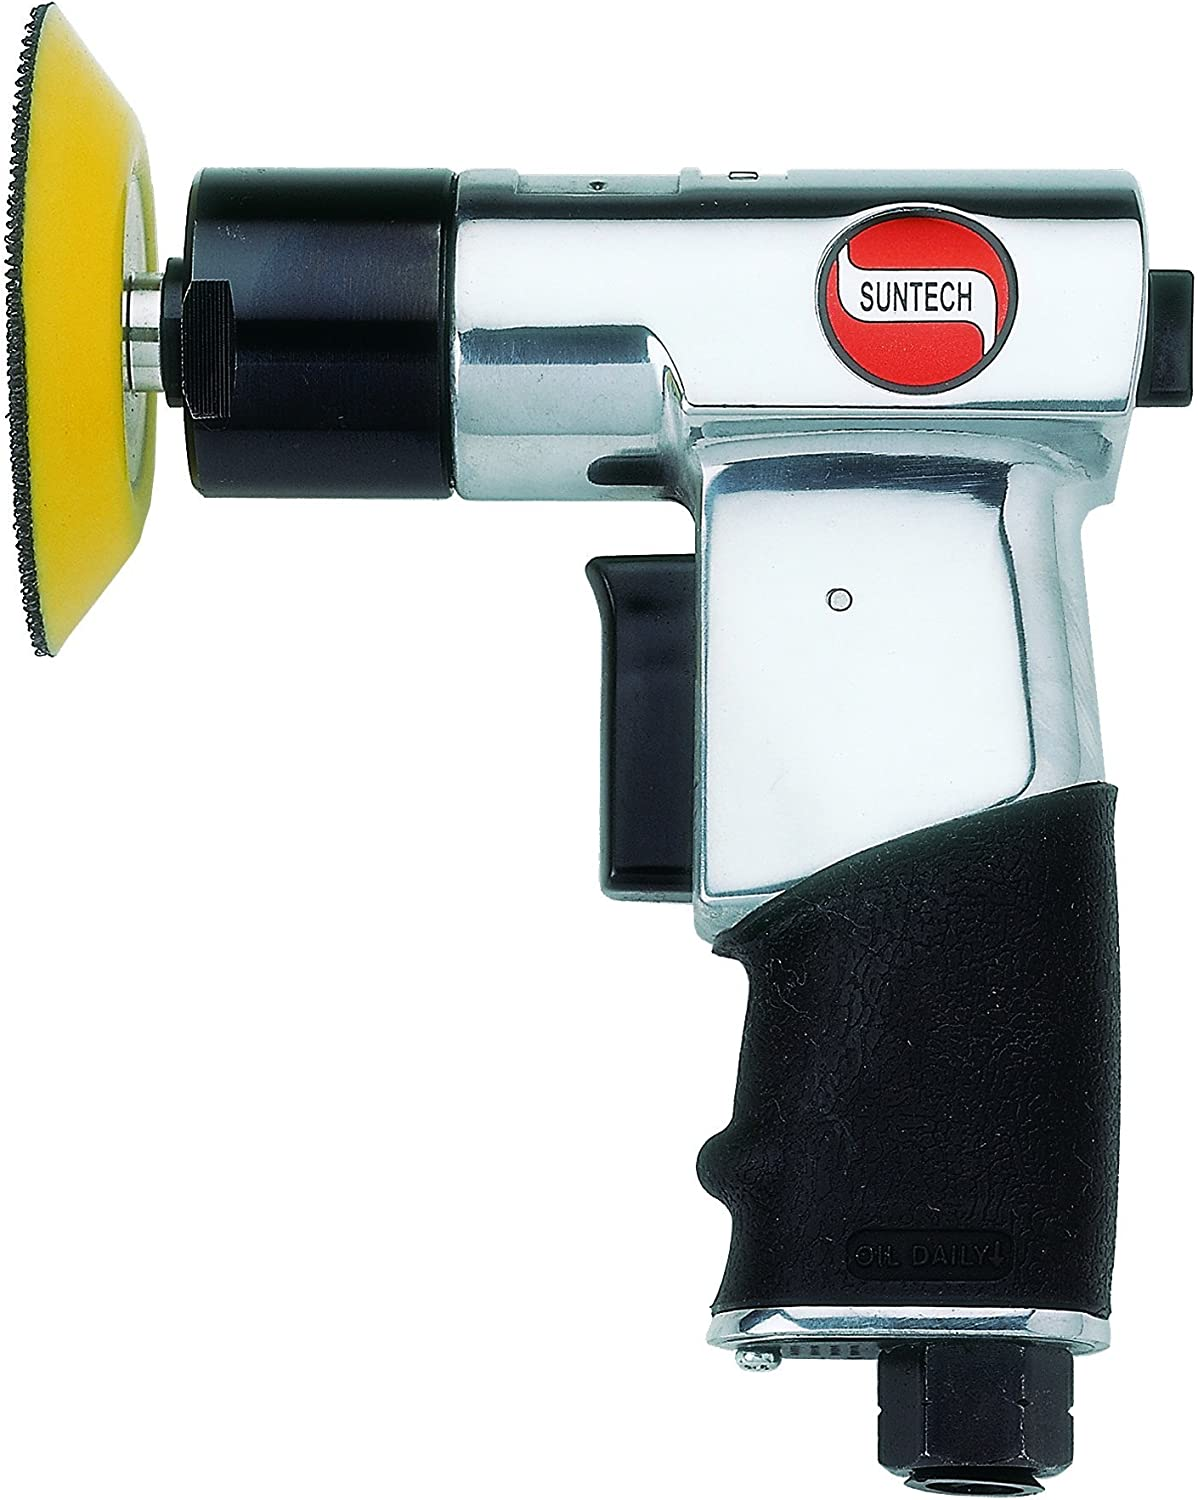 SUNTECH SM-6004 3 Mini Polisher, Spindle 1 4 -20